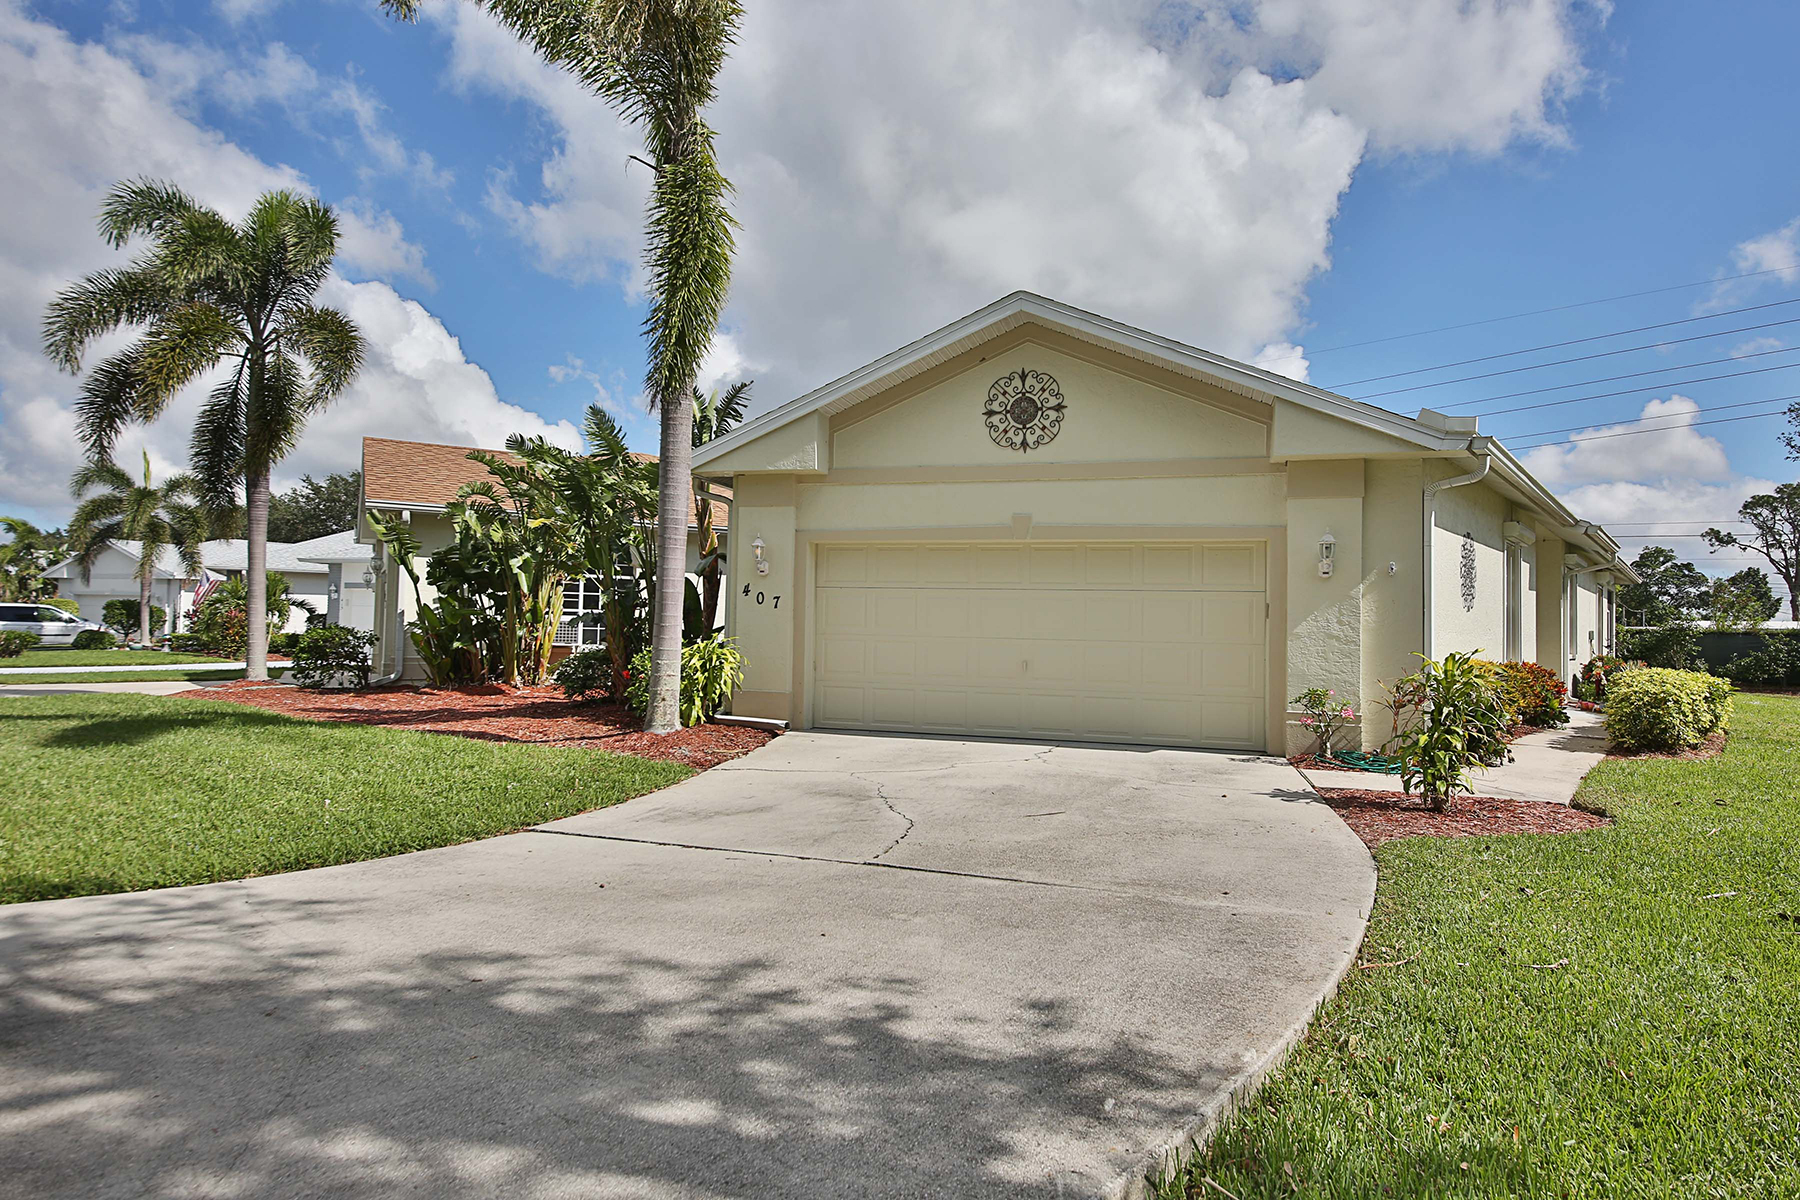 تاون هاوس للـ Sale في Naples 407 Crossfield Cir 83, Naples, Florida, 34104 United States